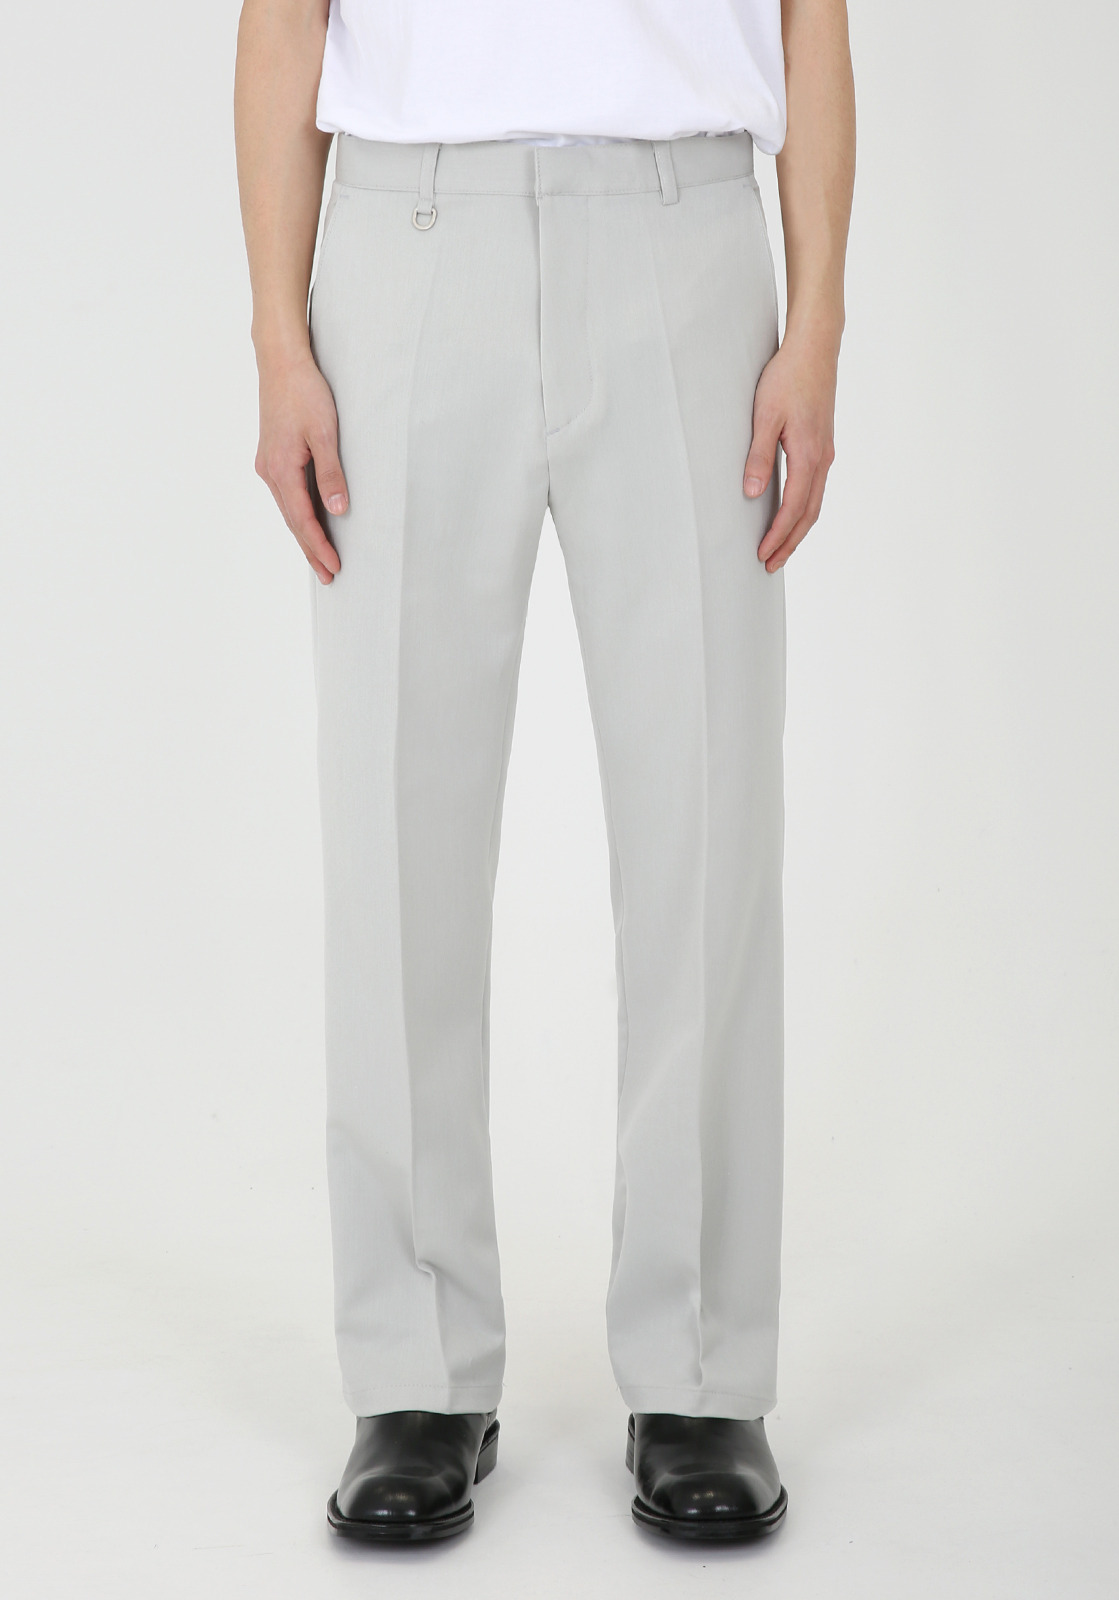 V304 LETO SLIM WIDE SLACKS  LIGHT GRAY